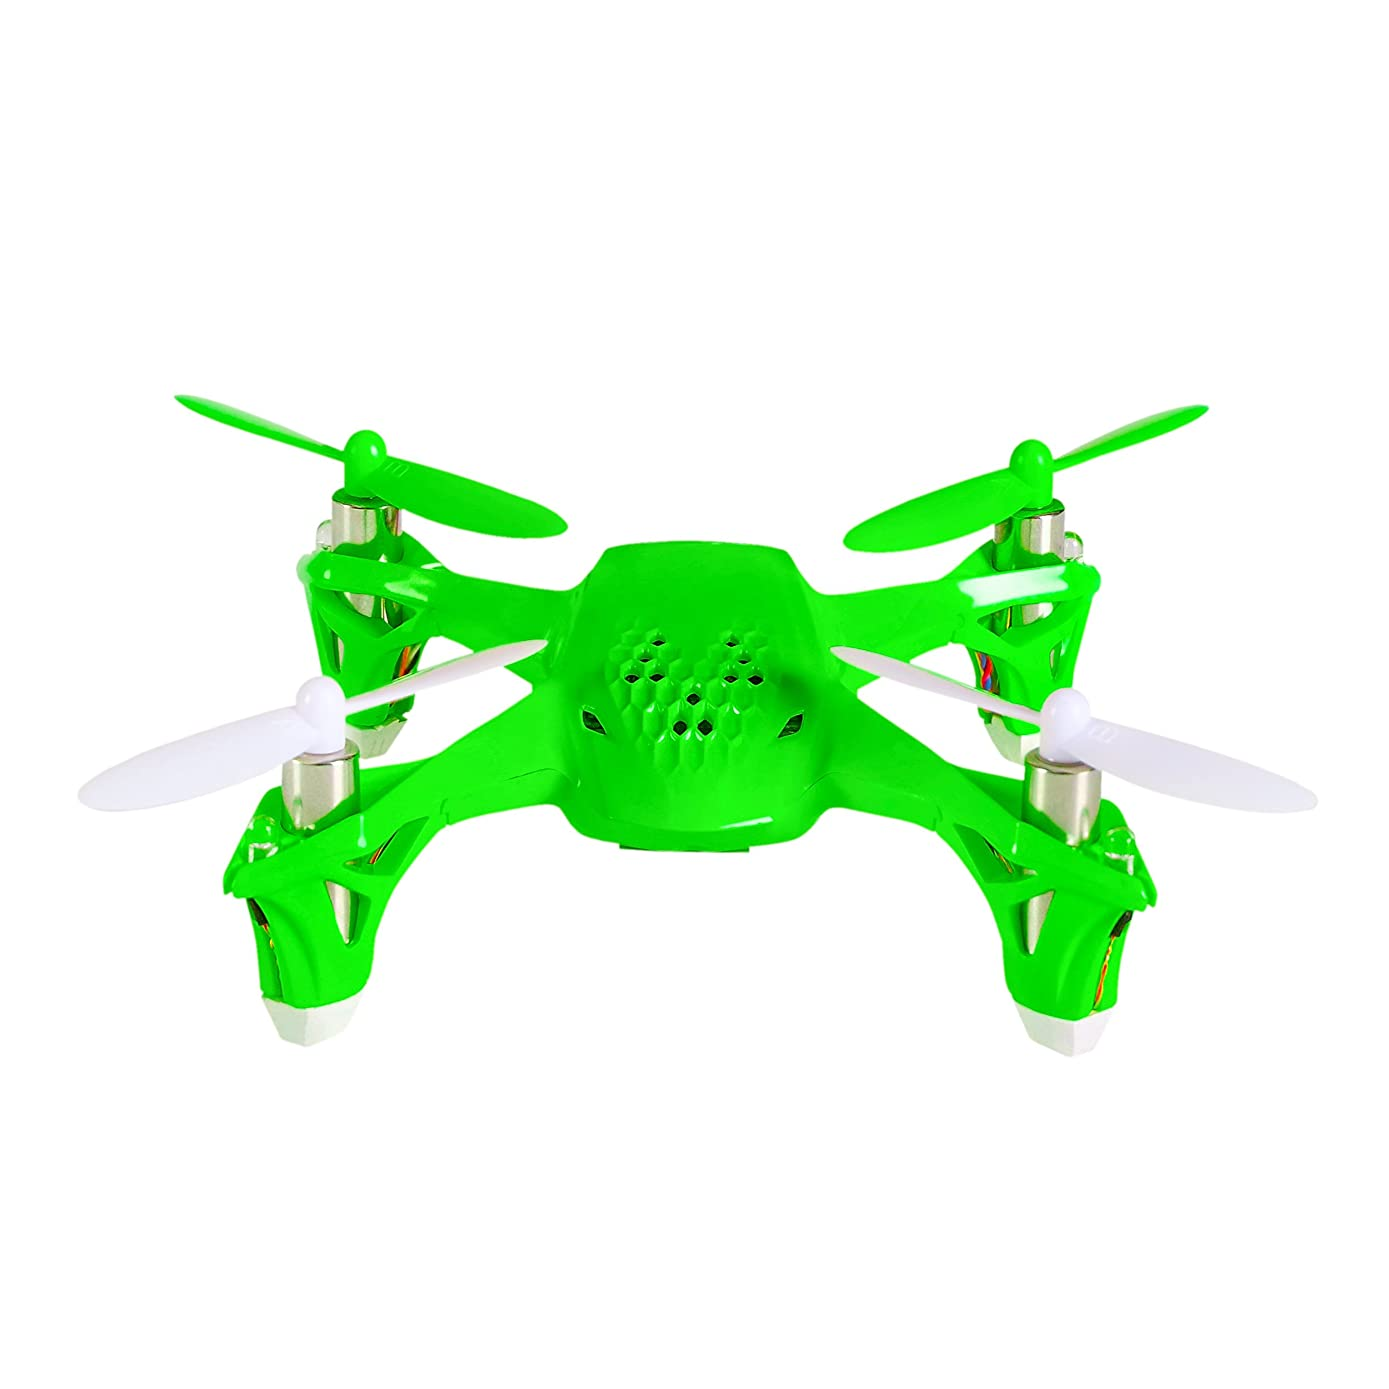 Tekstra Hubsan Spyder Micro Drone- 6-Axis Gimbal Adjustable Sensitivity, Modes Function, LED Lights, Small Quadcopter, Best Gifts for Your Kids.